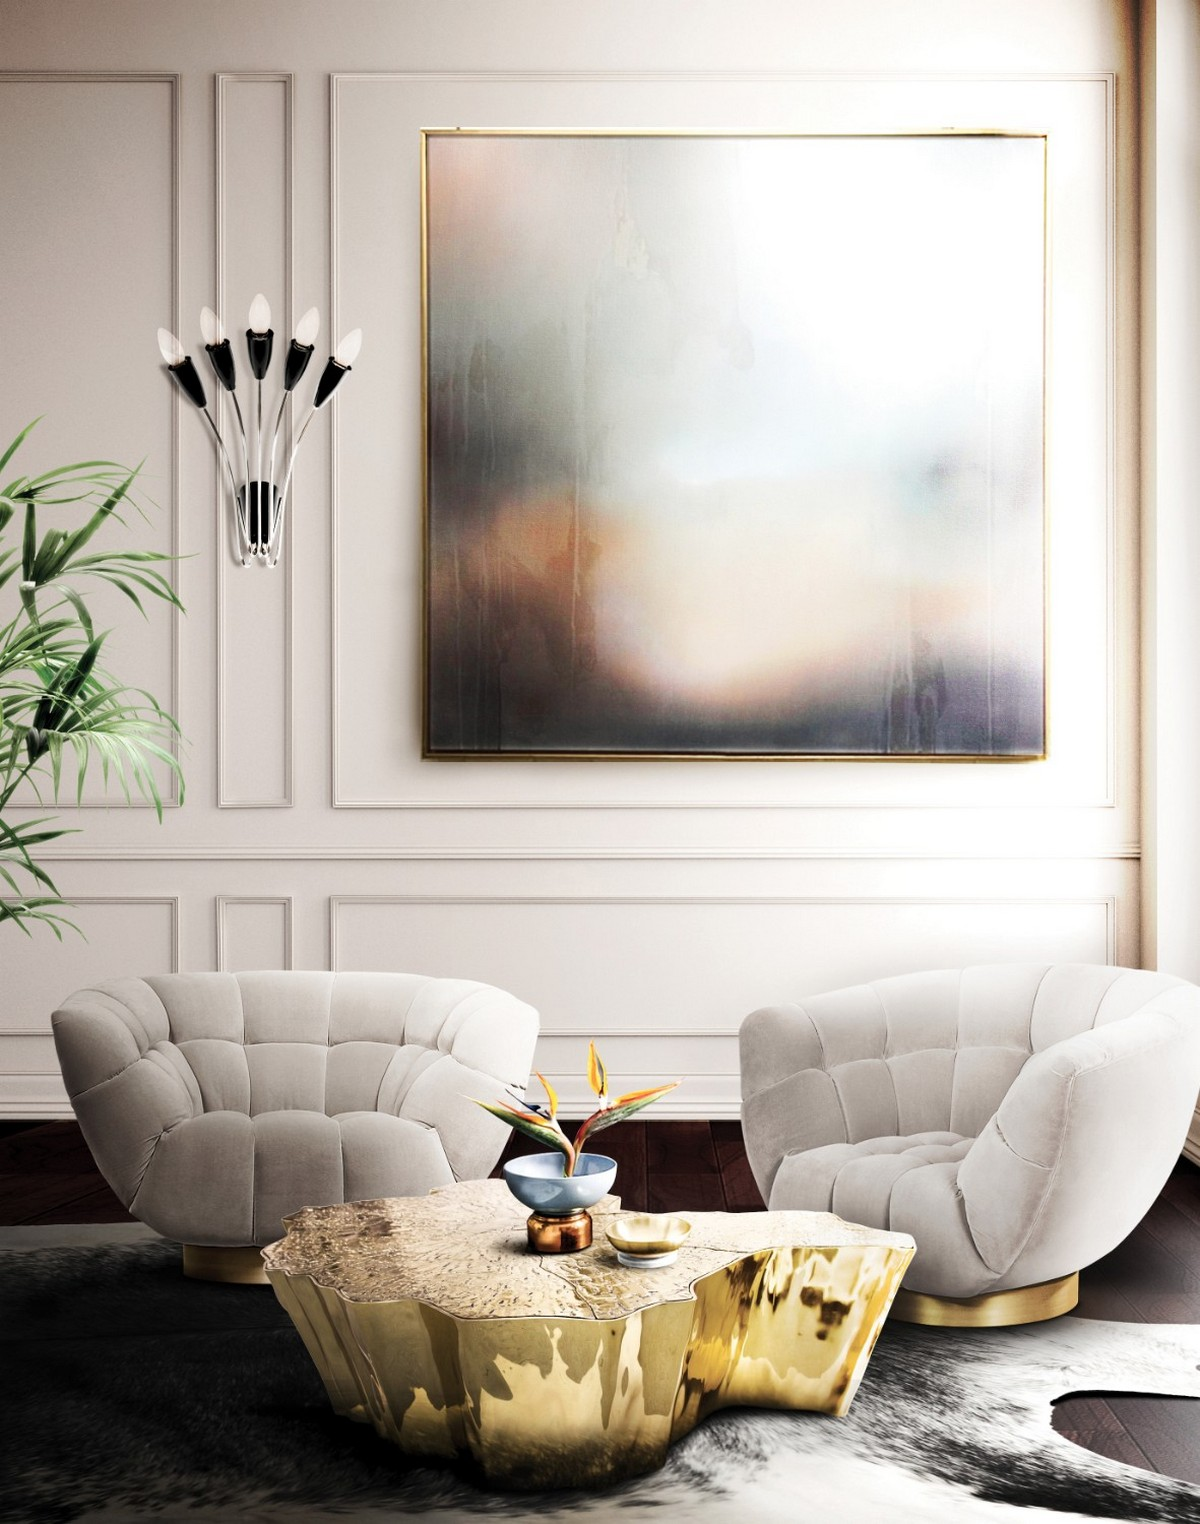 7 Living Room Design Ideas You Can Find On Pinterest